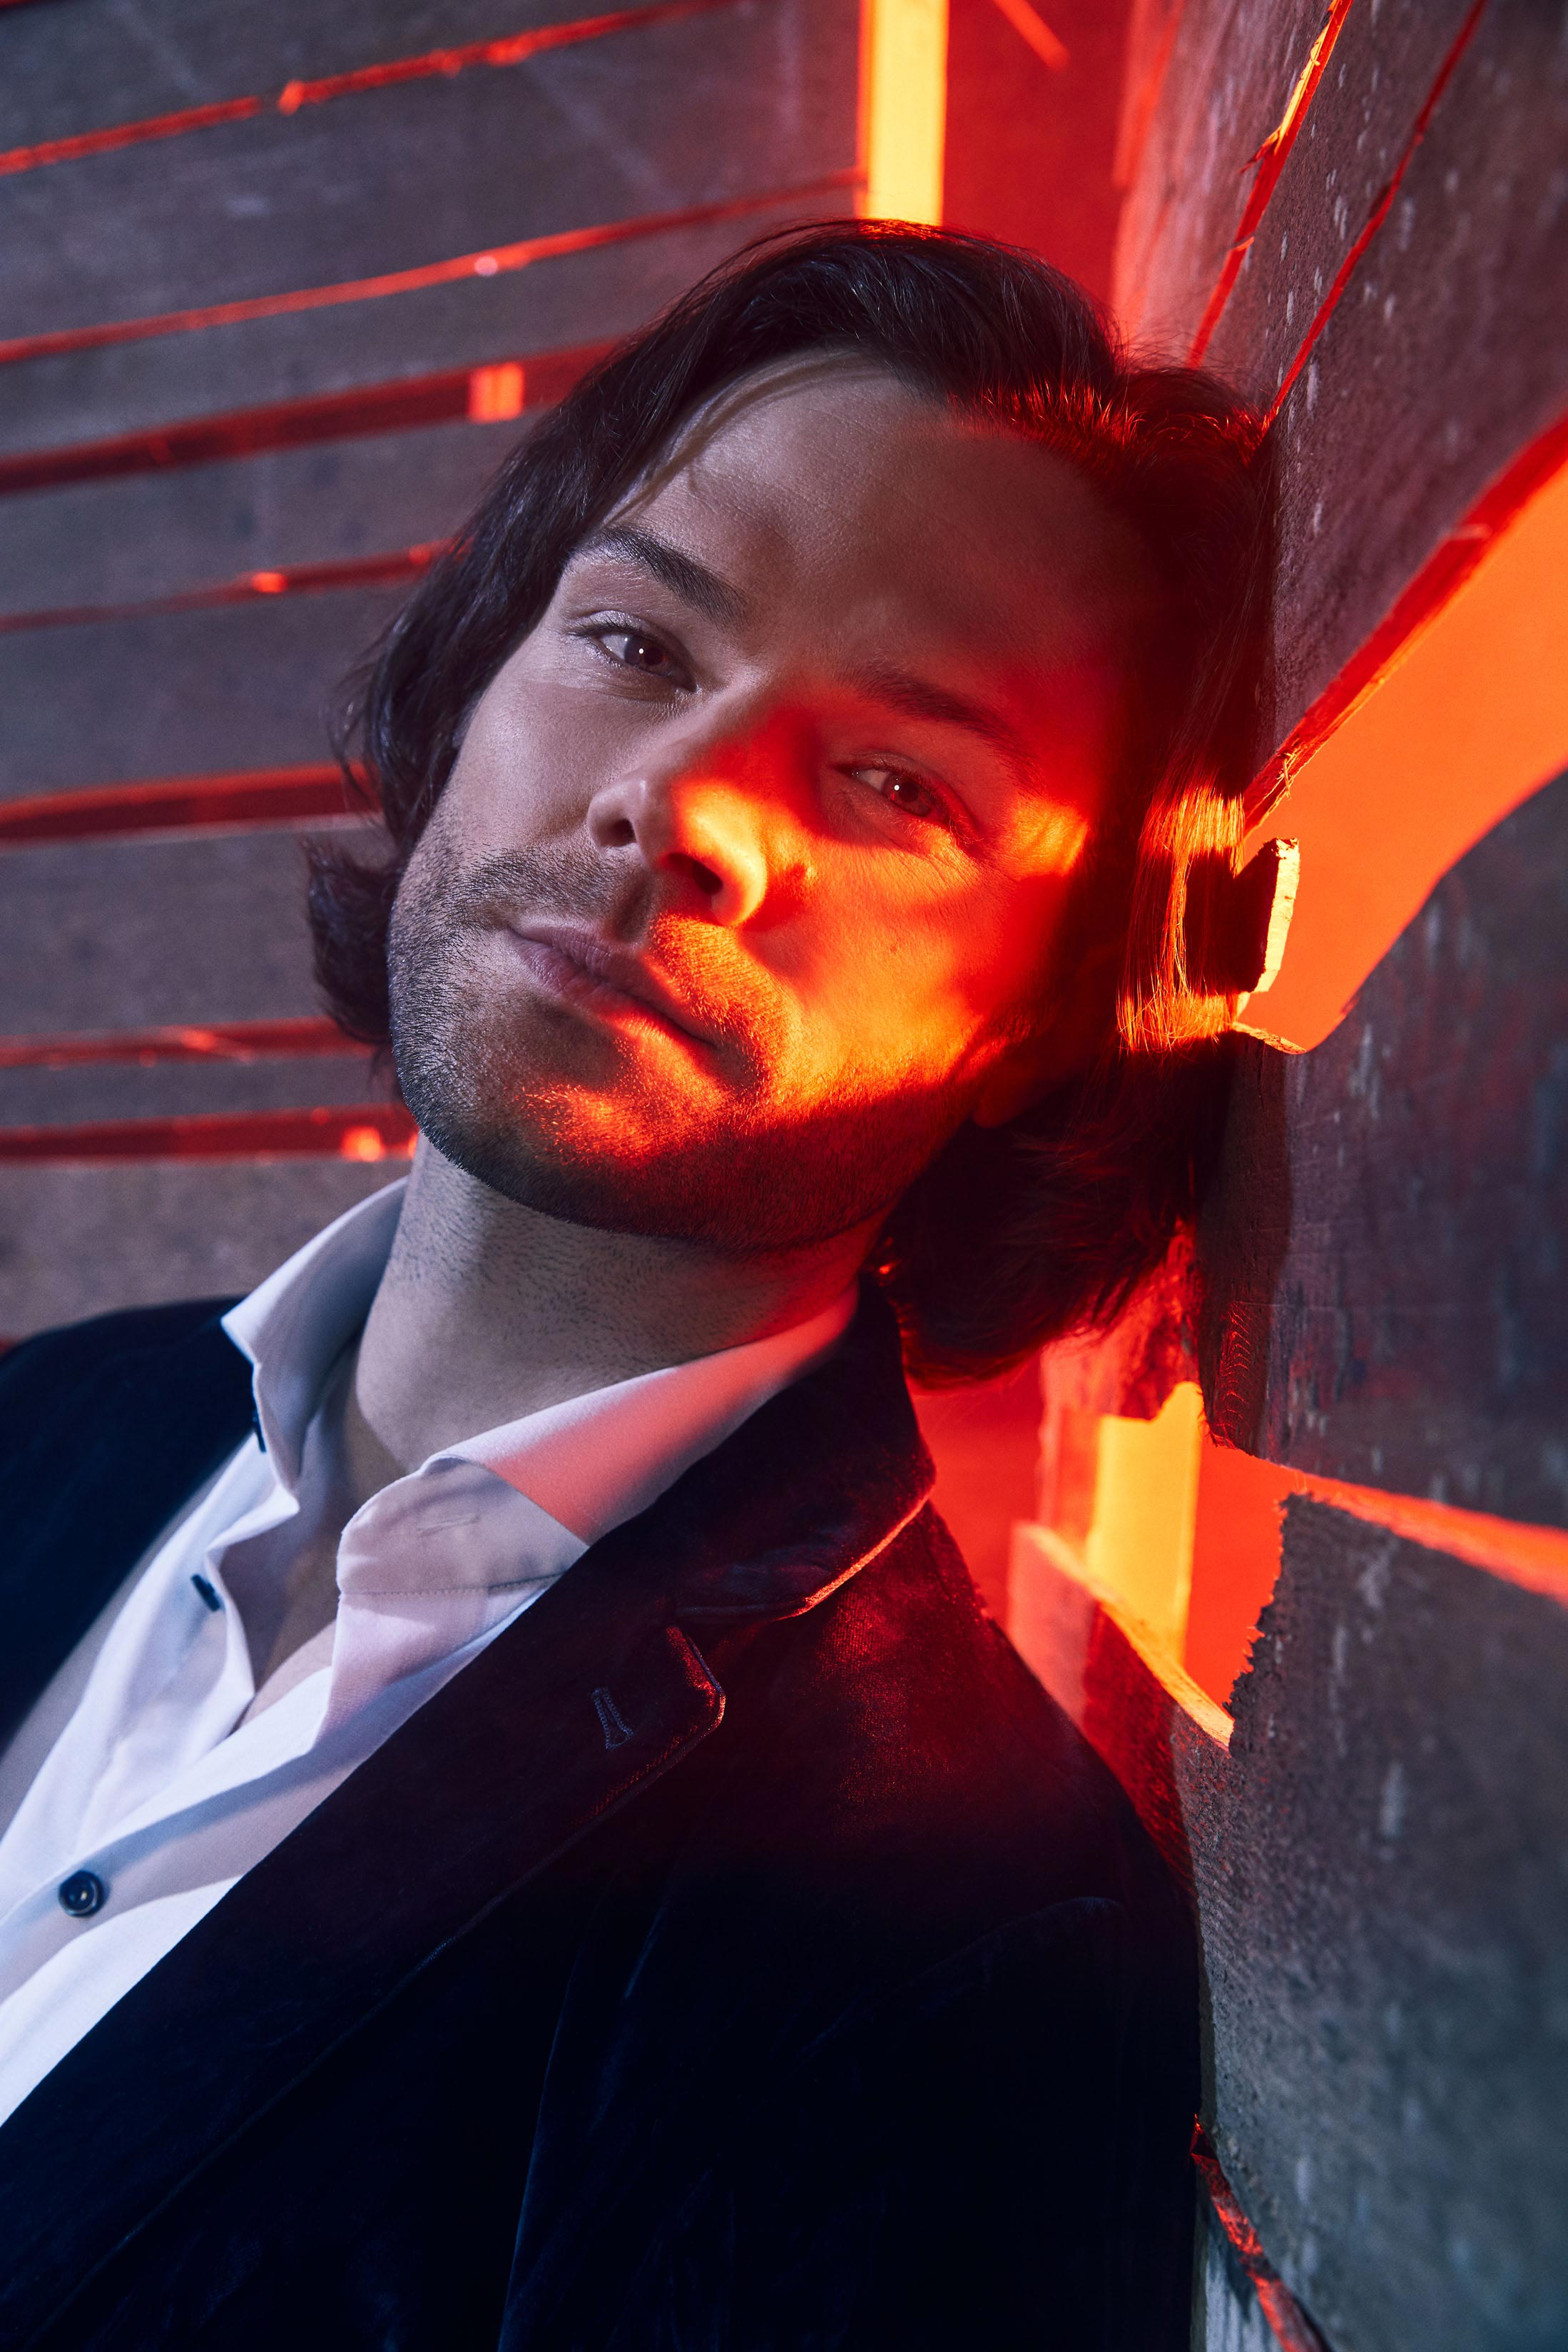 2019_01_09_EW_Supernatural_Jared_slats_0917-1_Web.jpg